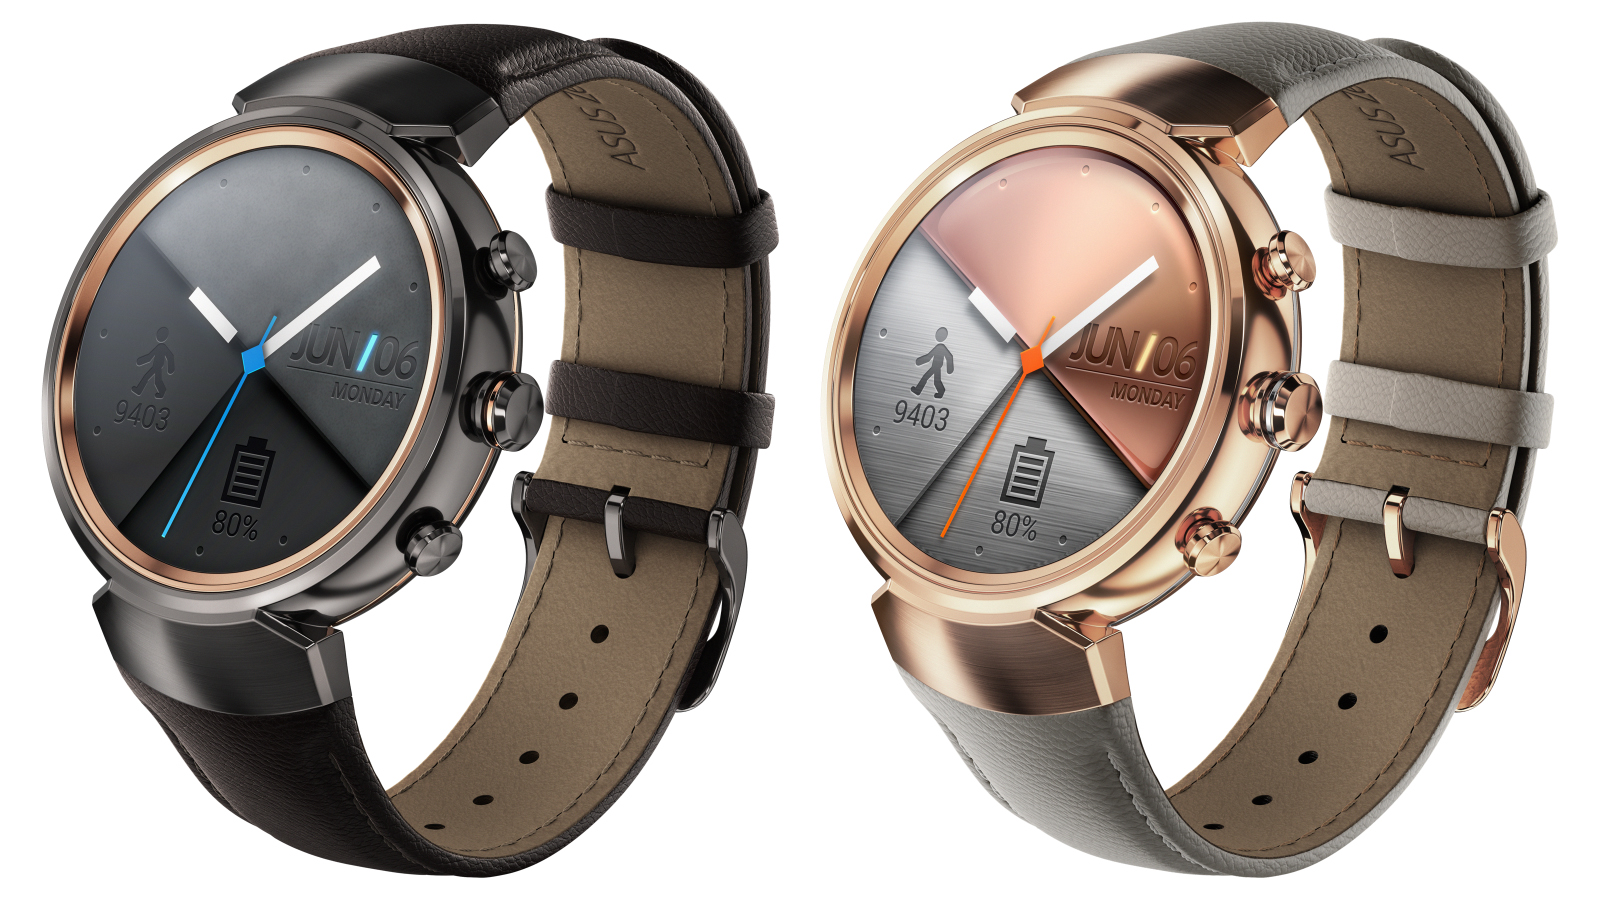 Https 2017 02 24 Samsung Pay Is Now Official In Garmin Forerunner 35 Putih Asus Zenwatch 3 Android Wear 20